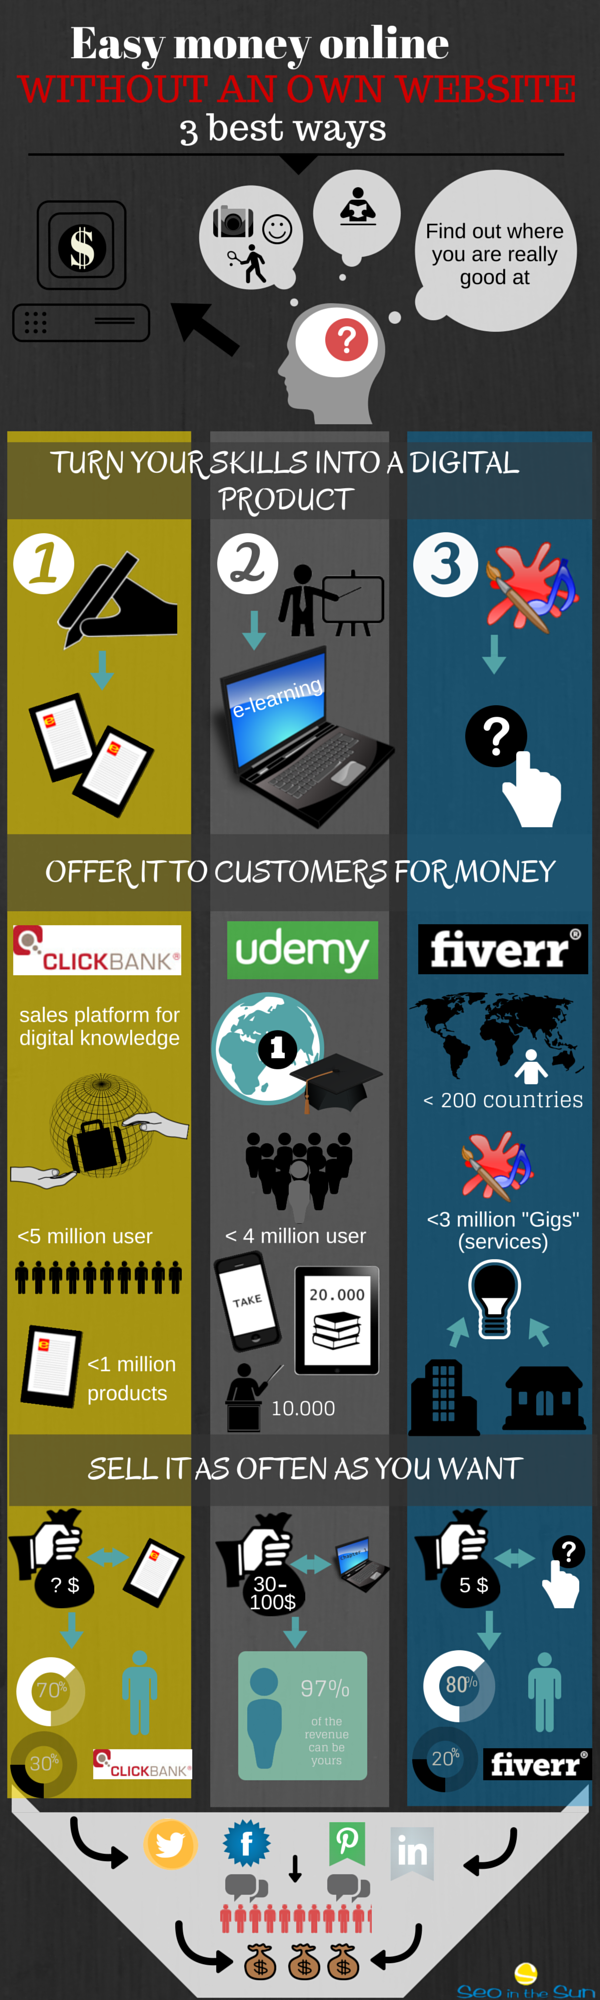 Infographic Easy money online without an own website - 3 best ways